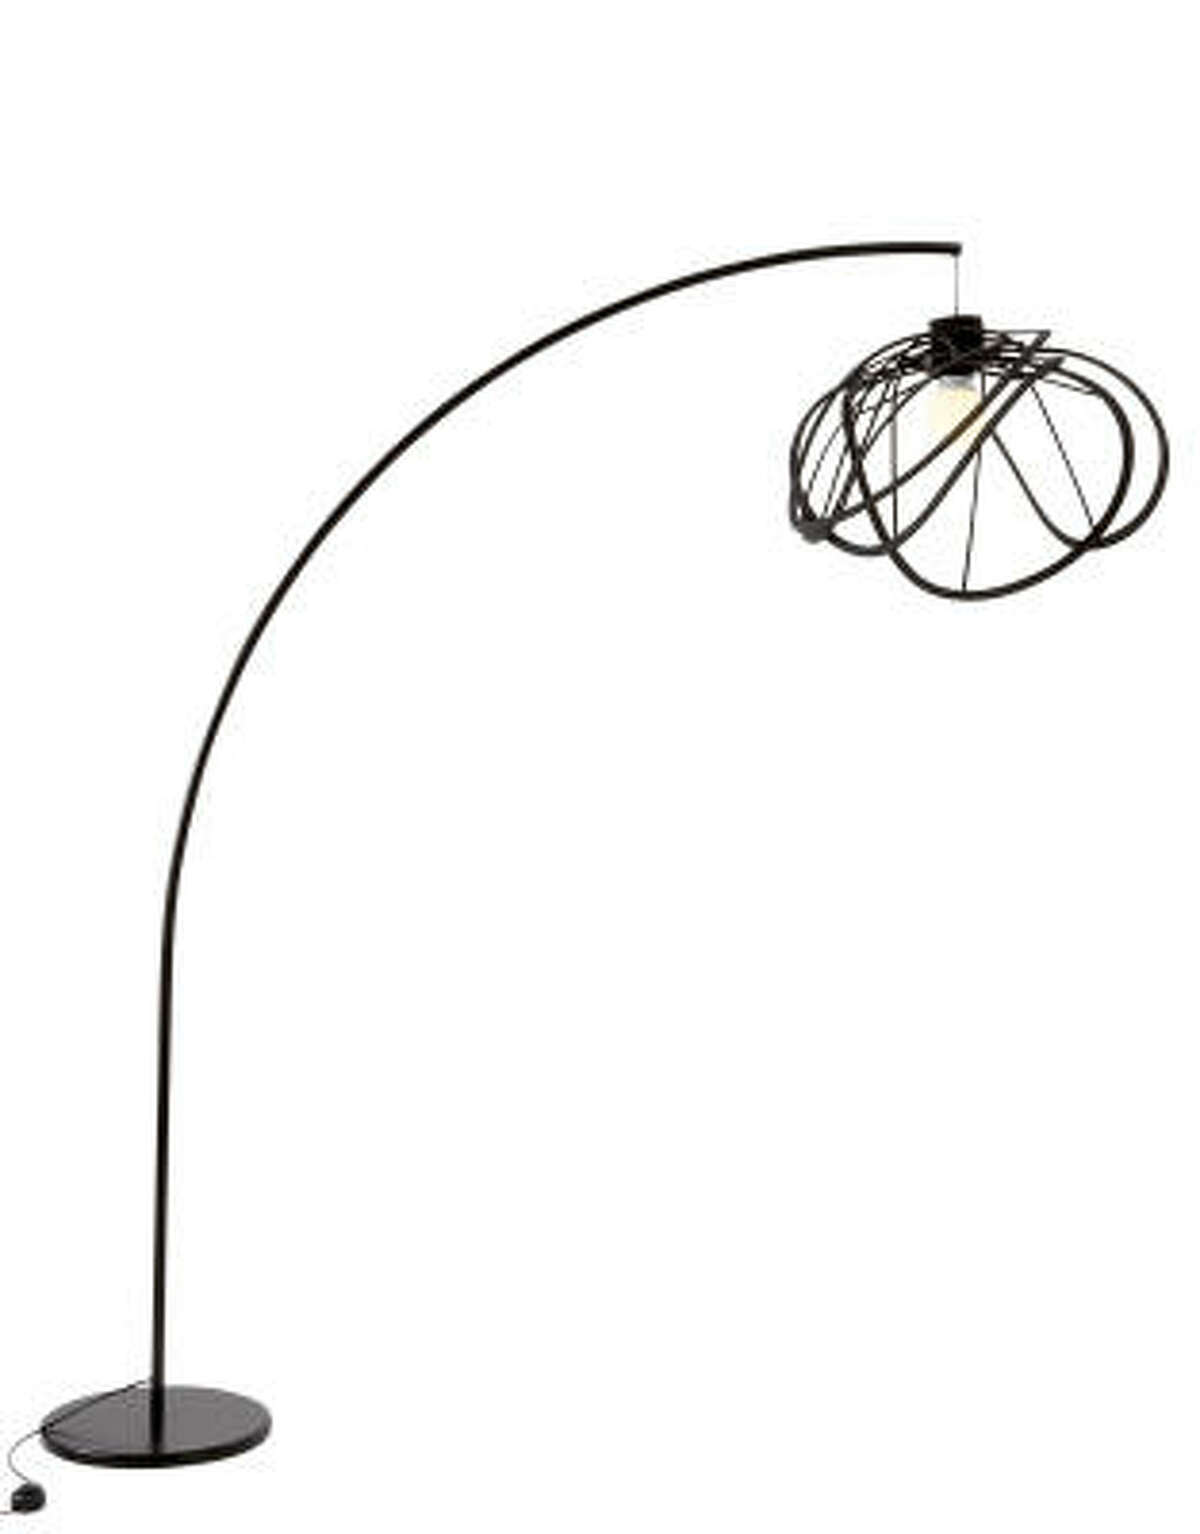 The floor lamp, $845, is anchored by a circular base and a thin, gracefully arching metal stem. Both ceiling and floor versions are available in black or white.